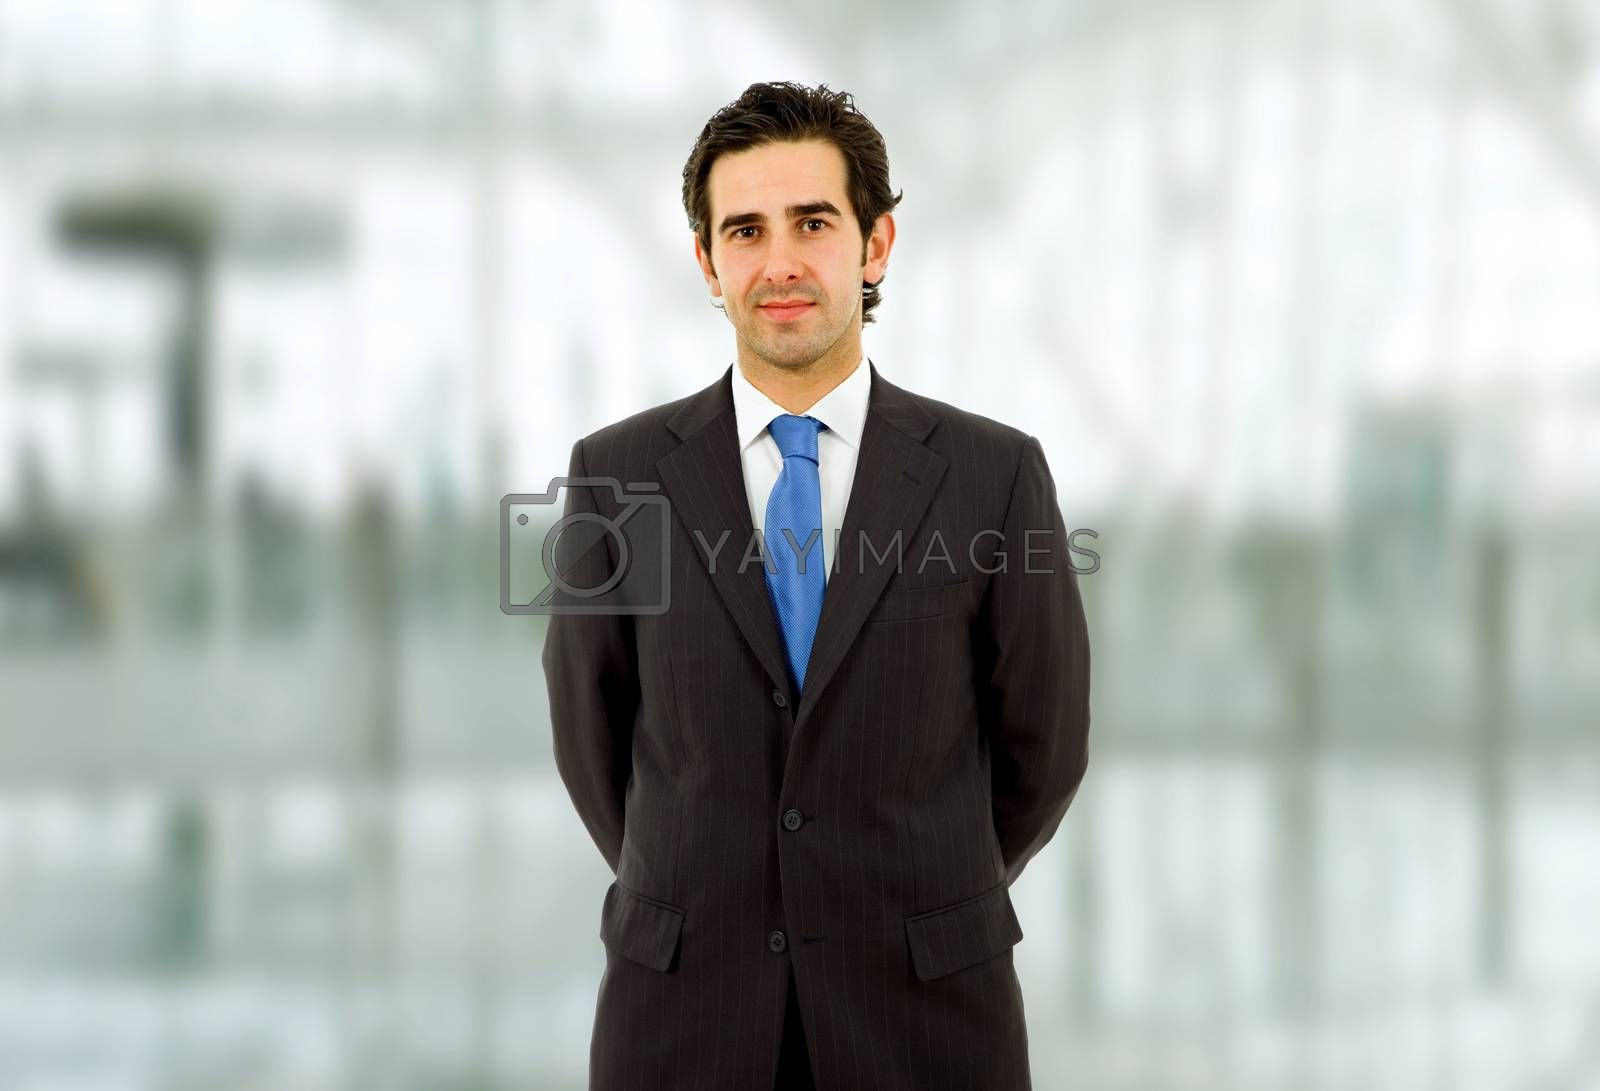 Royalty free image of business man by zittto